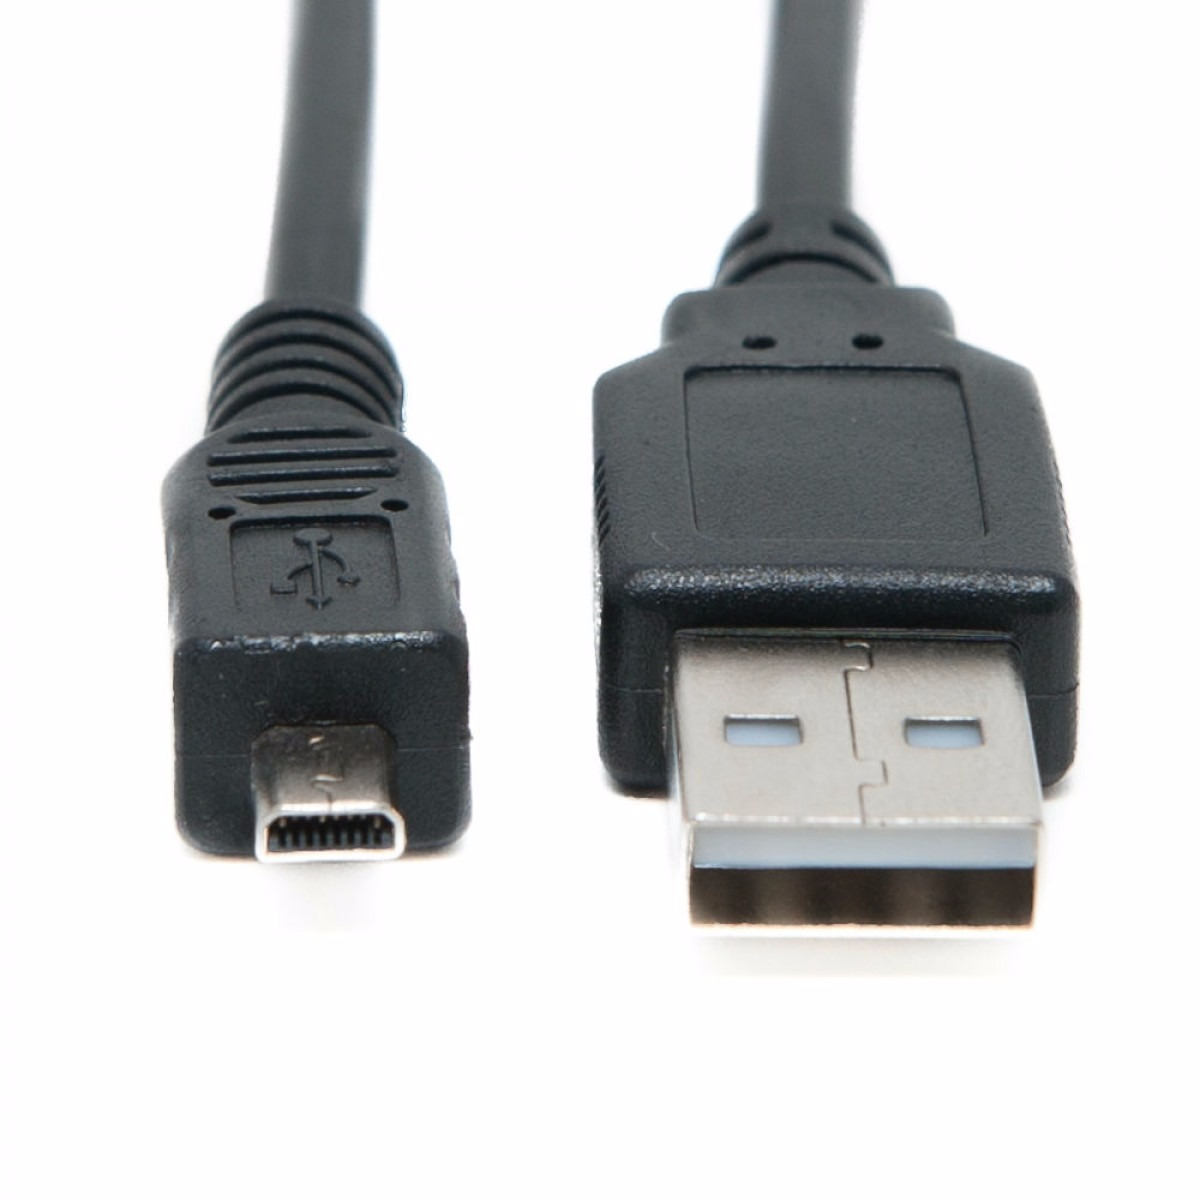 Cable Usb Olympus X-875 880 890 895 905 915 920 925 930 935